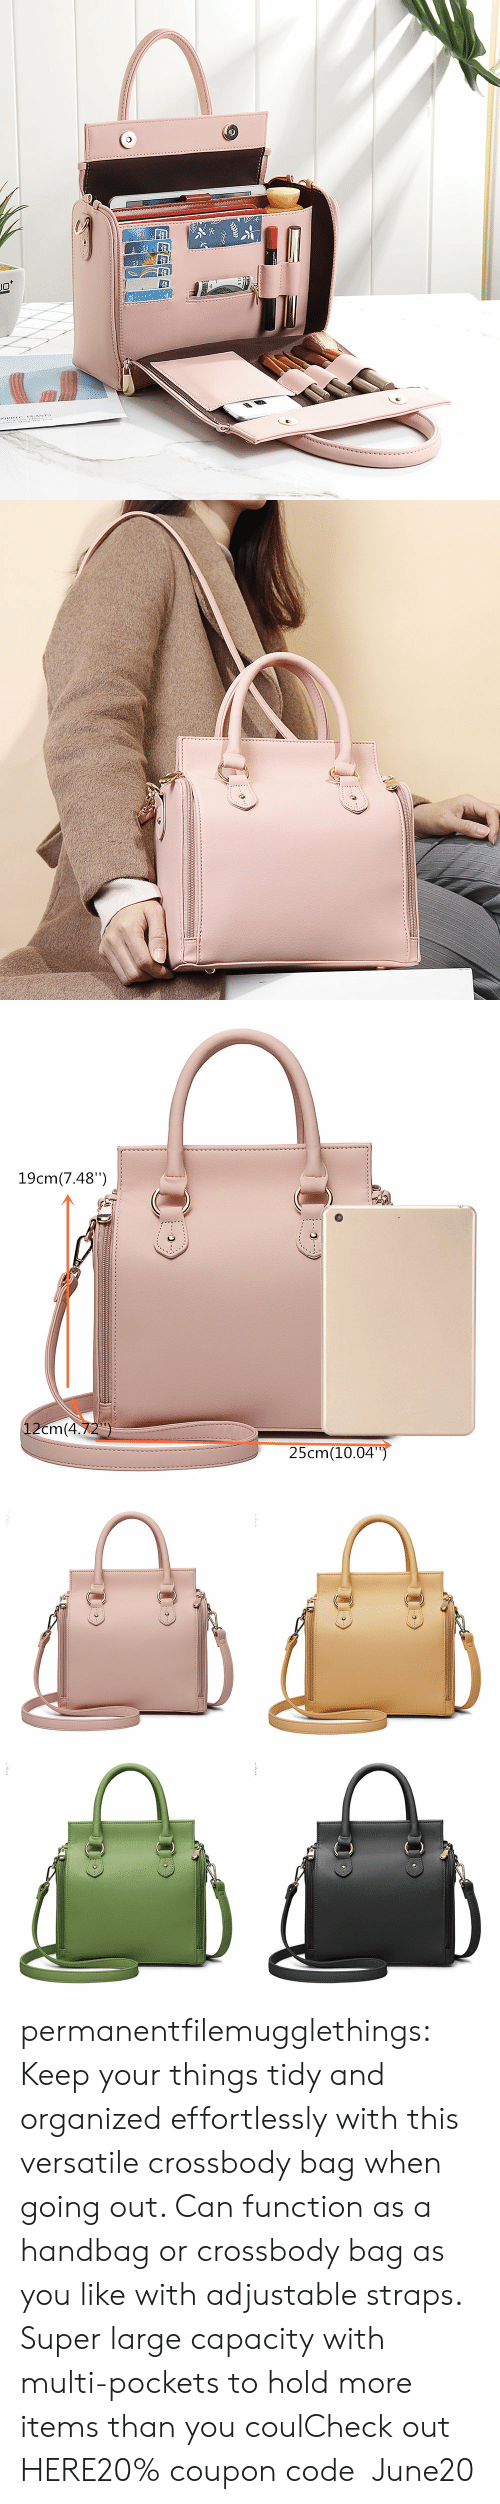 """Tumblr, Blog, and Super: JC  ORDIC EANTS   19cm(7.48"""")  12cm(4.72)  25cm(10.04"""") permanentfilemugglethings:  Keep your things tidy and organized effortlessly with this versatile crossbody bag when going out. Can function as a handbag or crossbody bag as you like with adjustable straps. Super large capacity with multi-pockets to hold more items than you coulCheck out HERE20% coupon code:June20"""